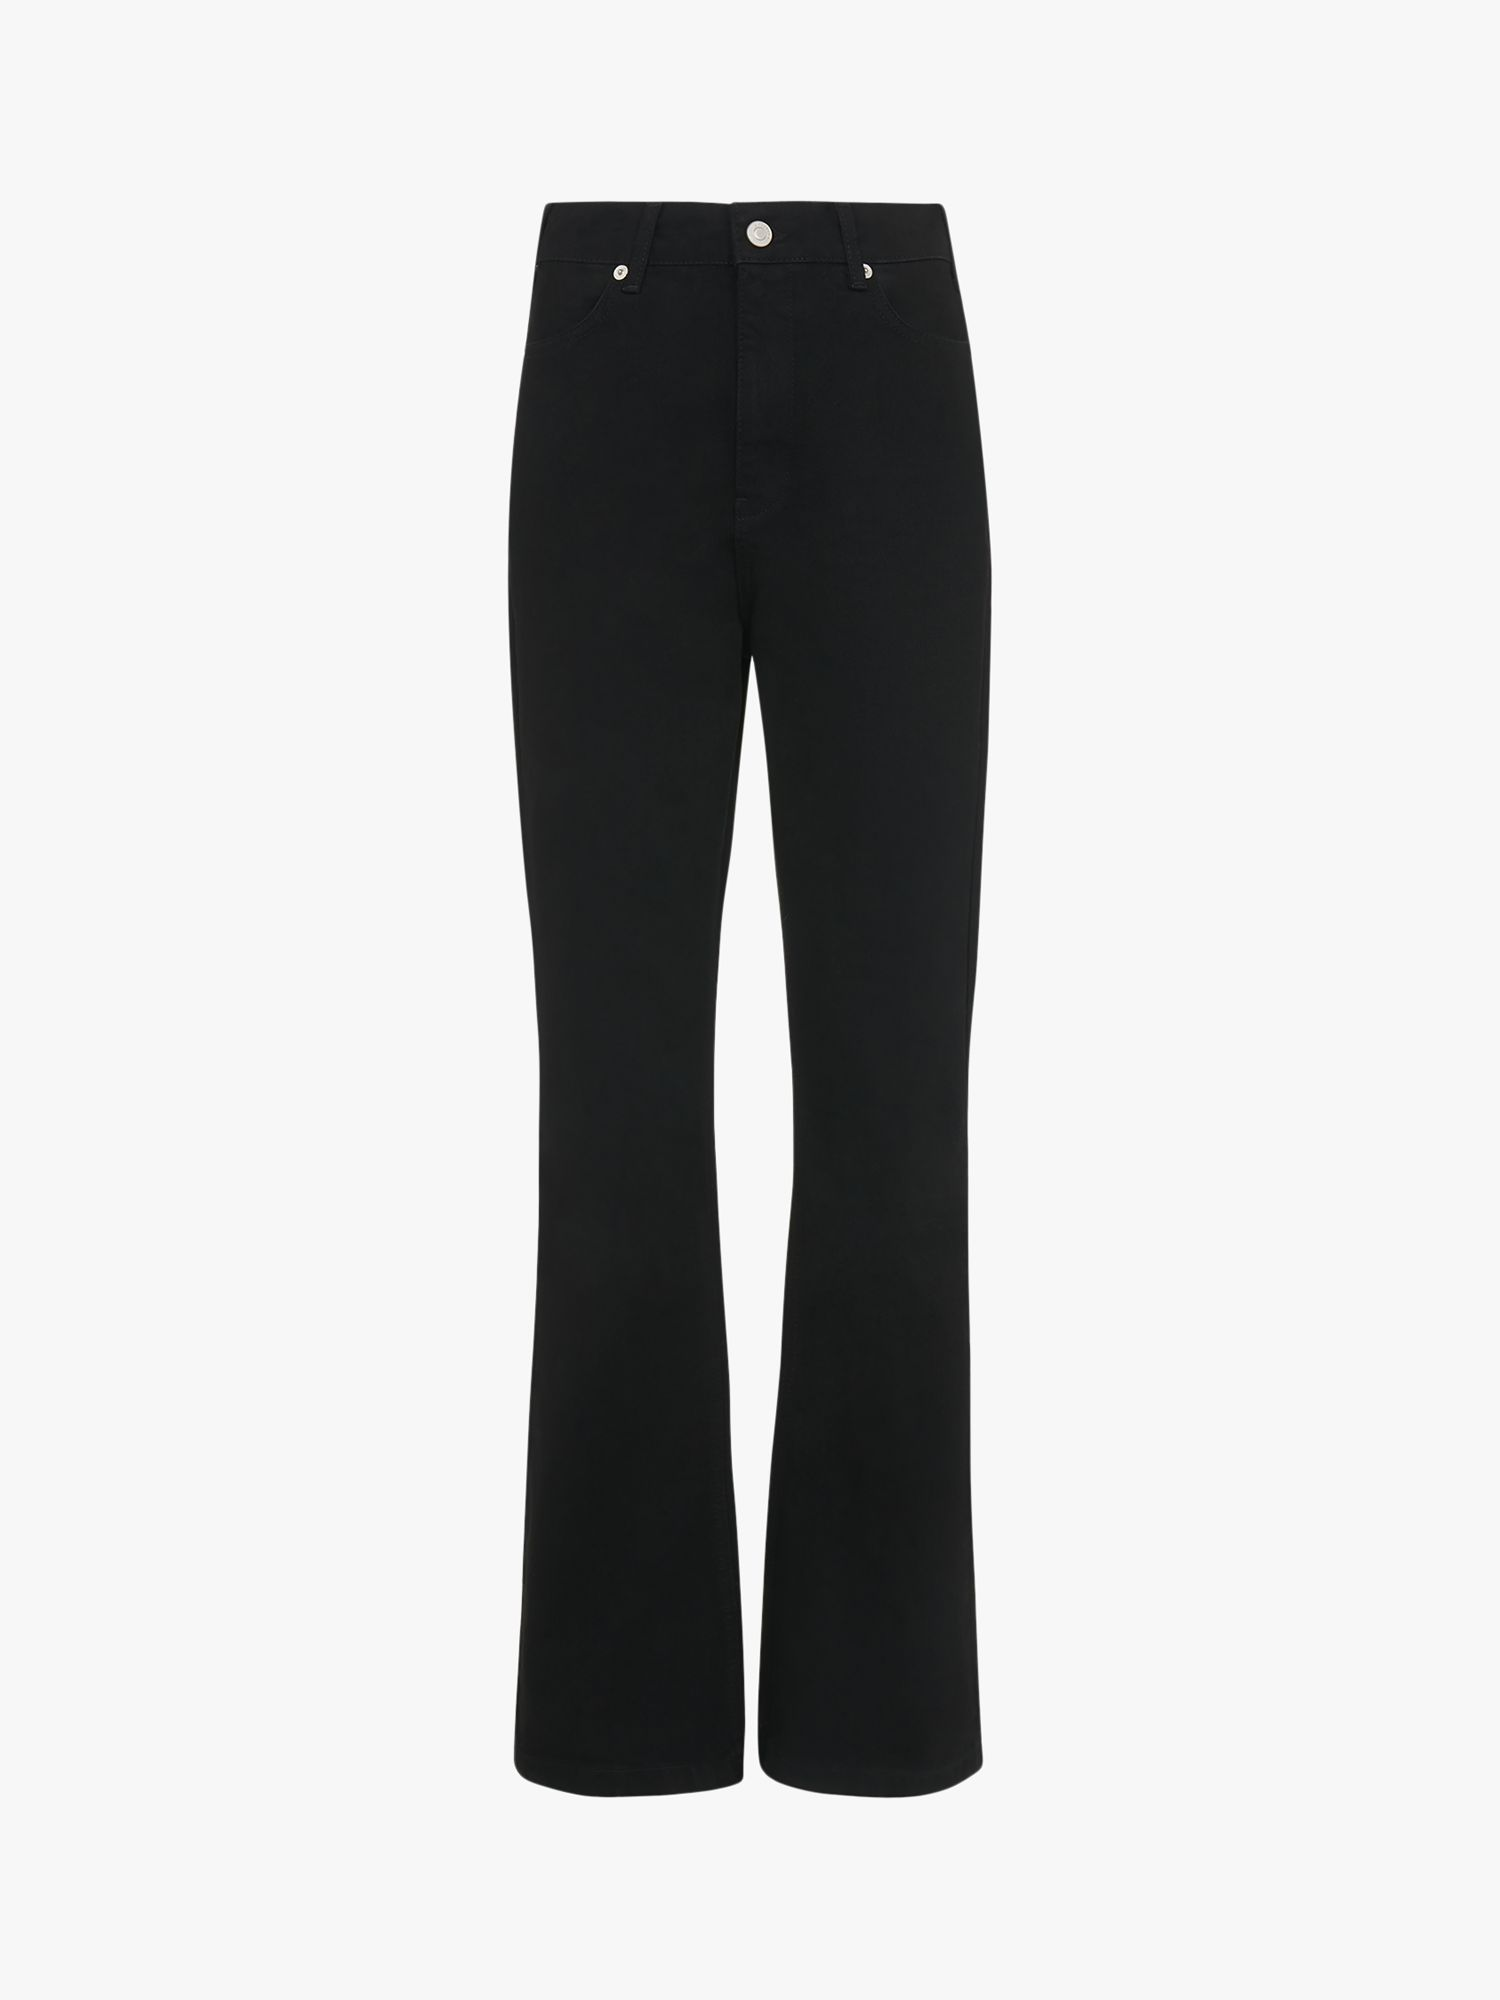 Whistles Authentic Flared Jeans, Black